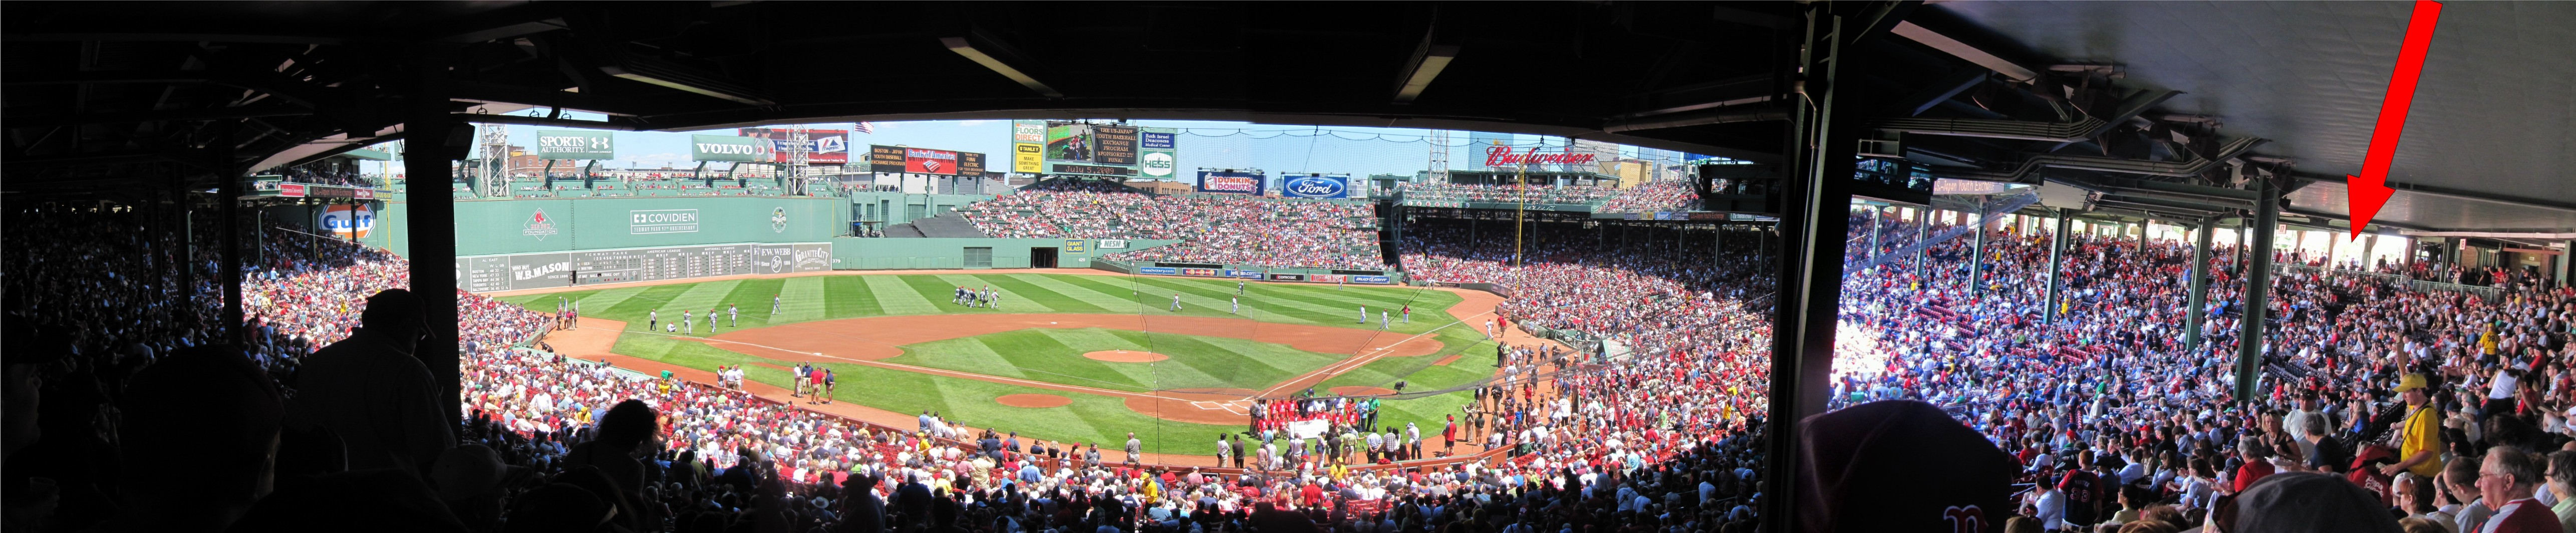 Fenway Park Standing Room Only Behind Section 13 Left And 12 Right Panorama